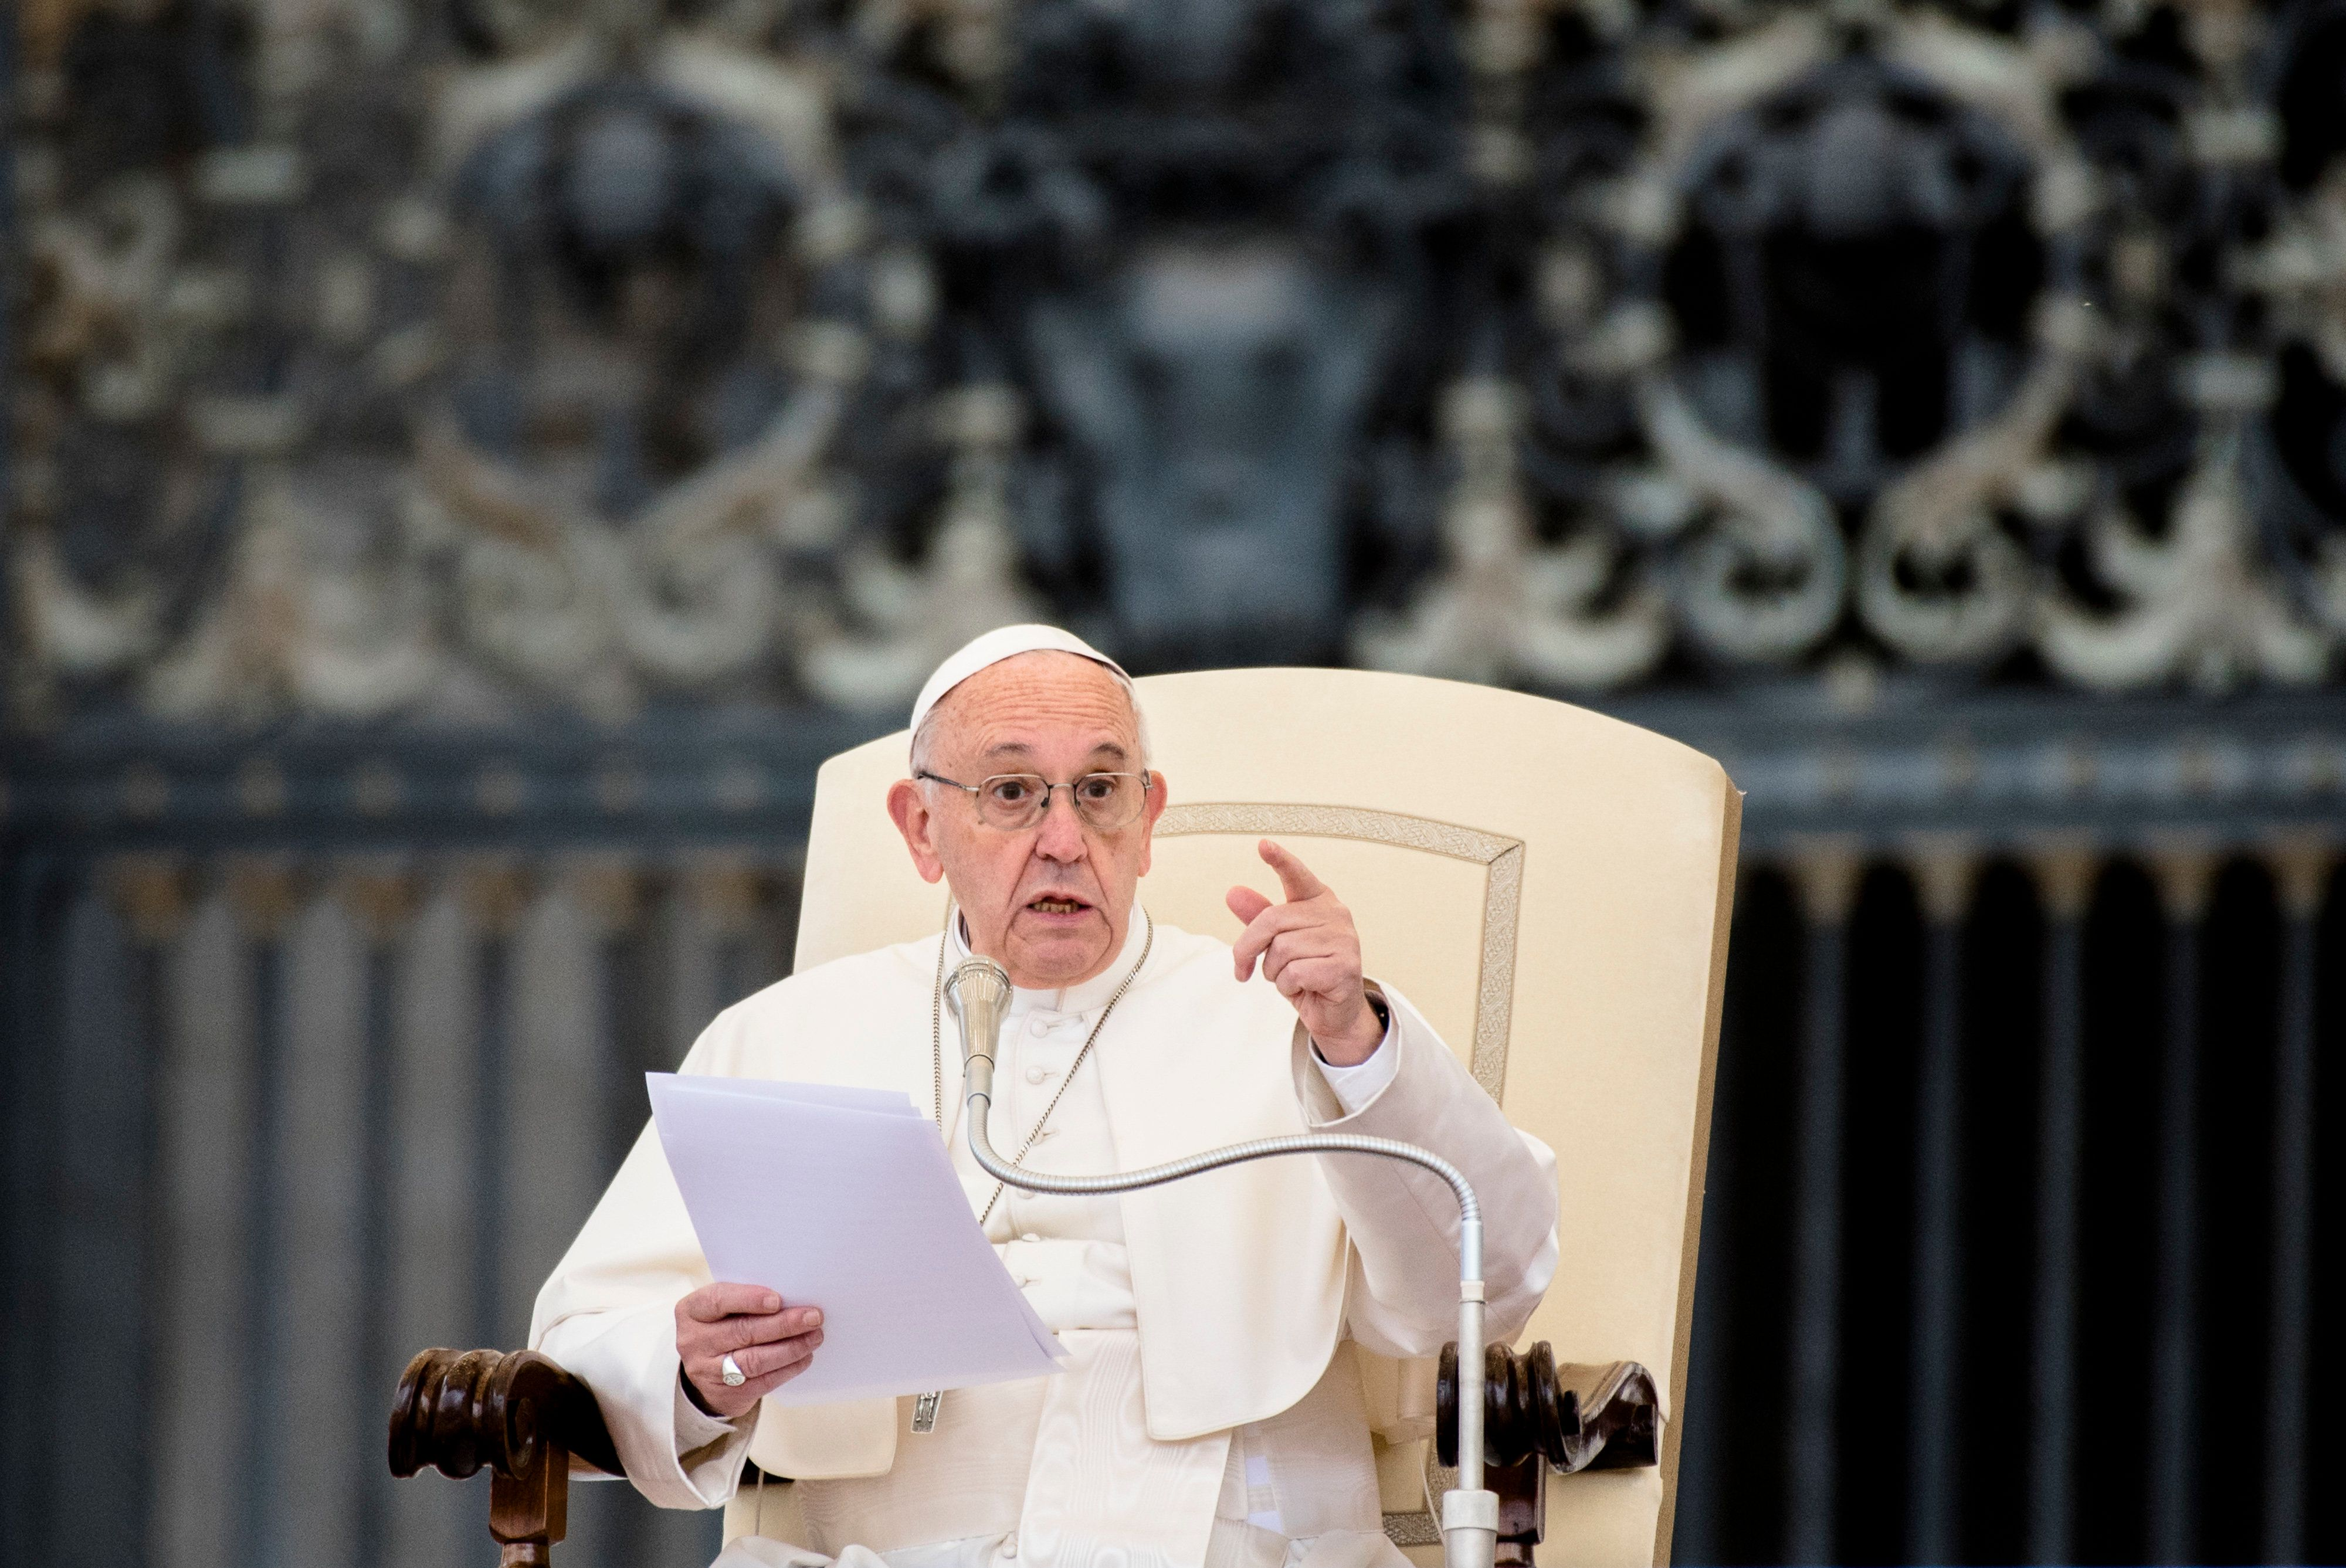 Pope Francis Blasts 'Perverse Attitudes' Of Climate Change